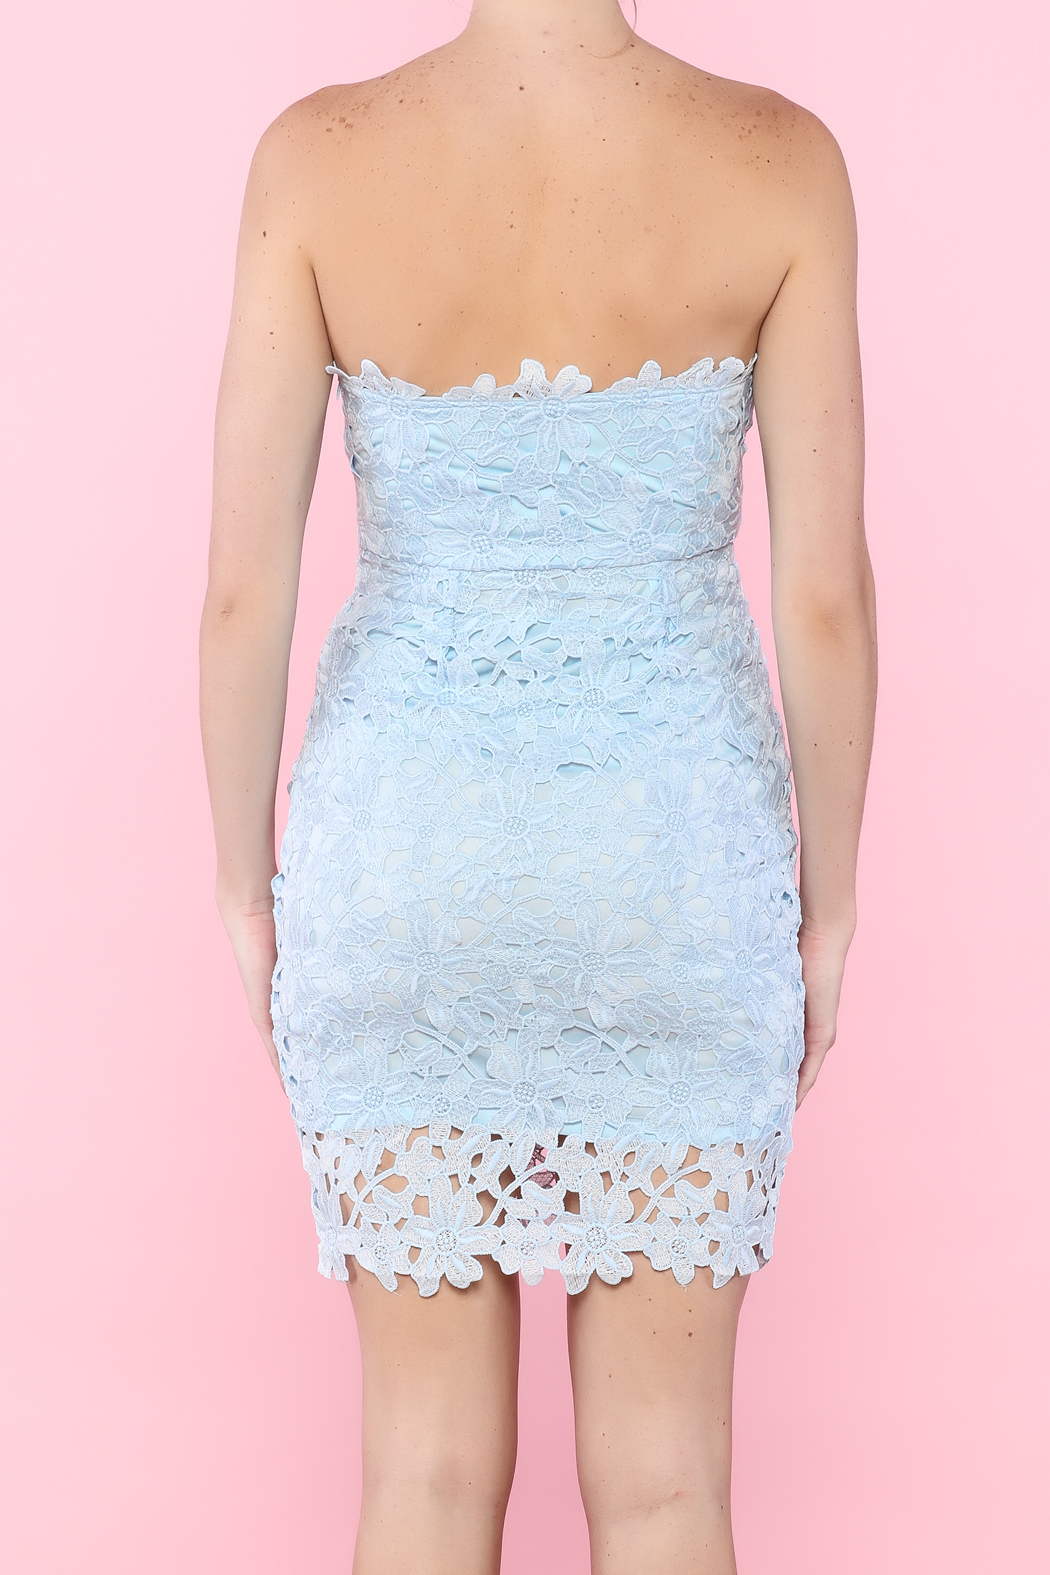 WYLDR Baby Blue Strapless Crochet Dress from Texas by Chic ...